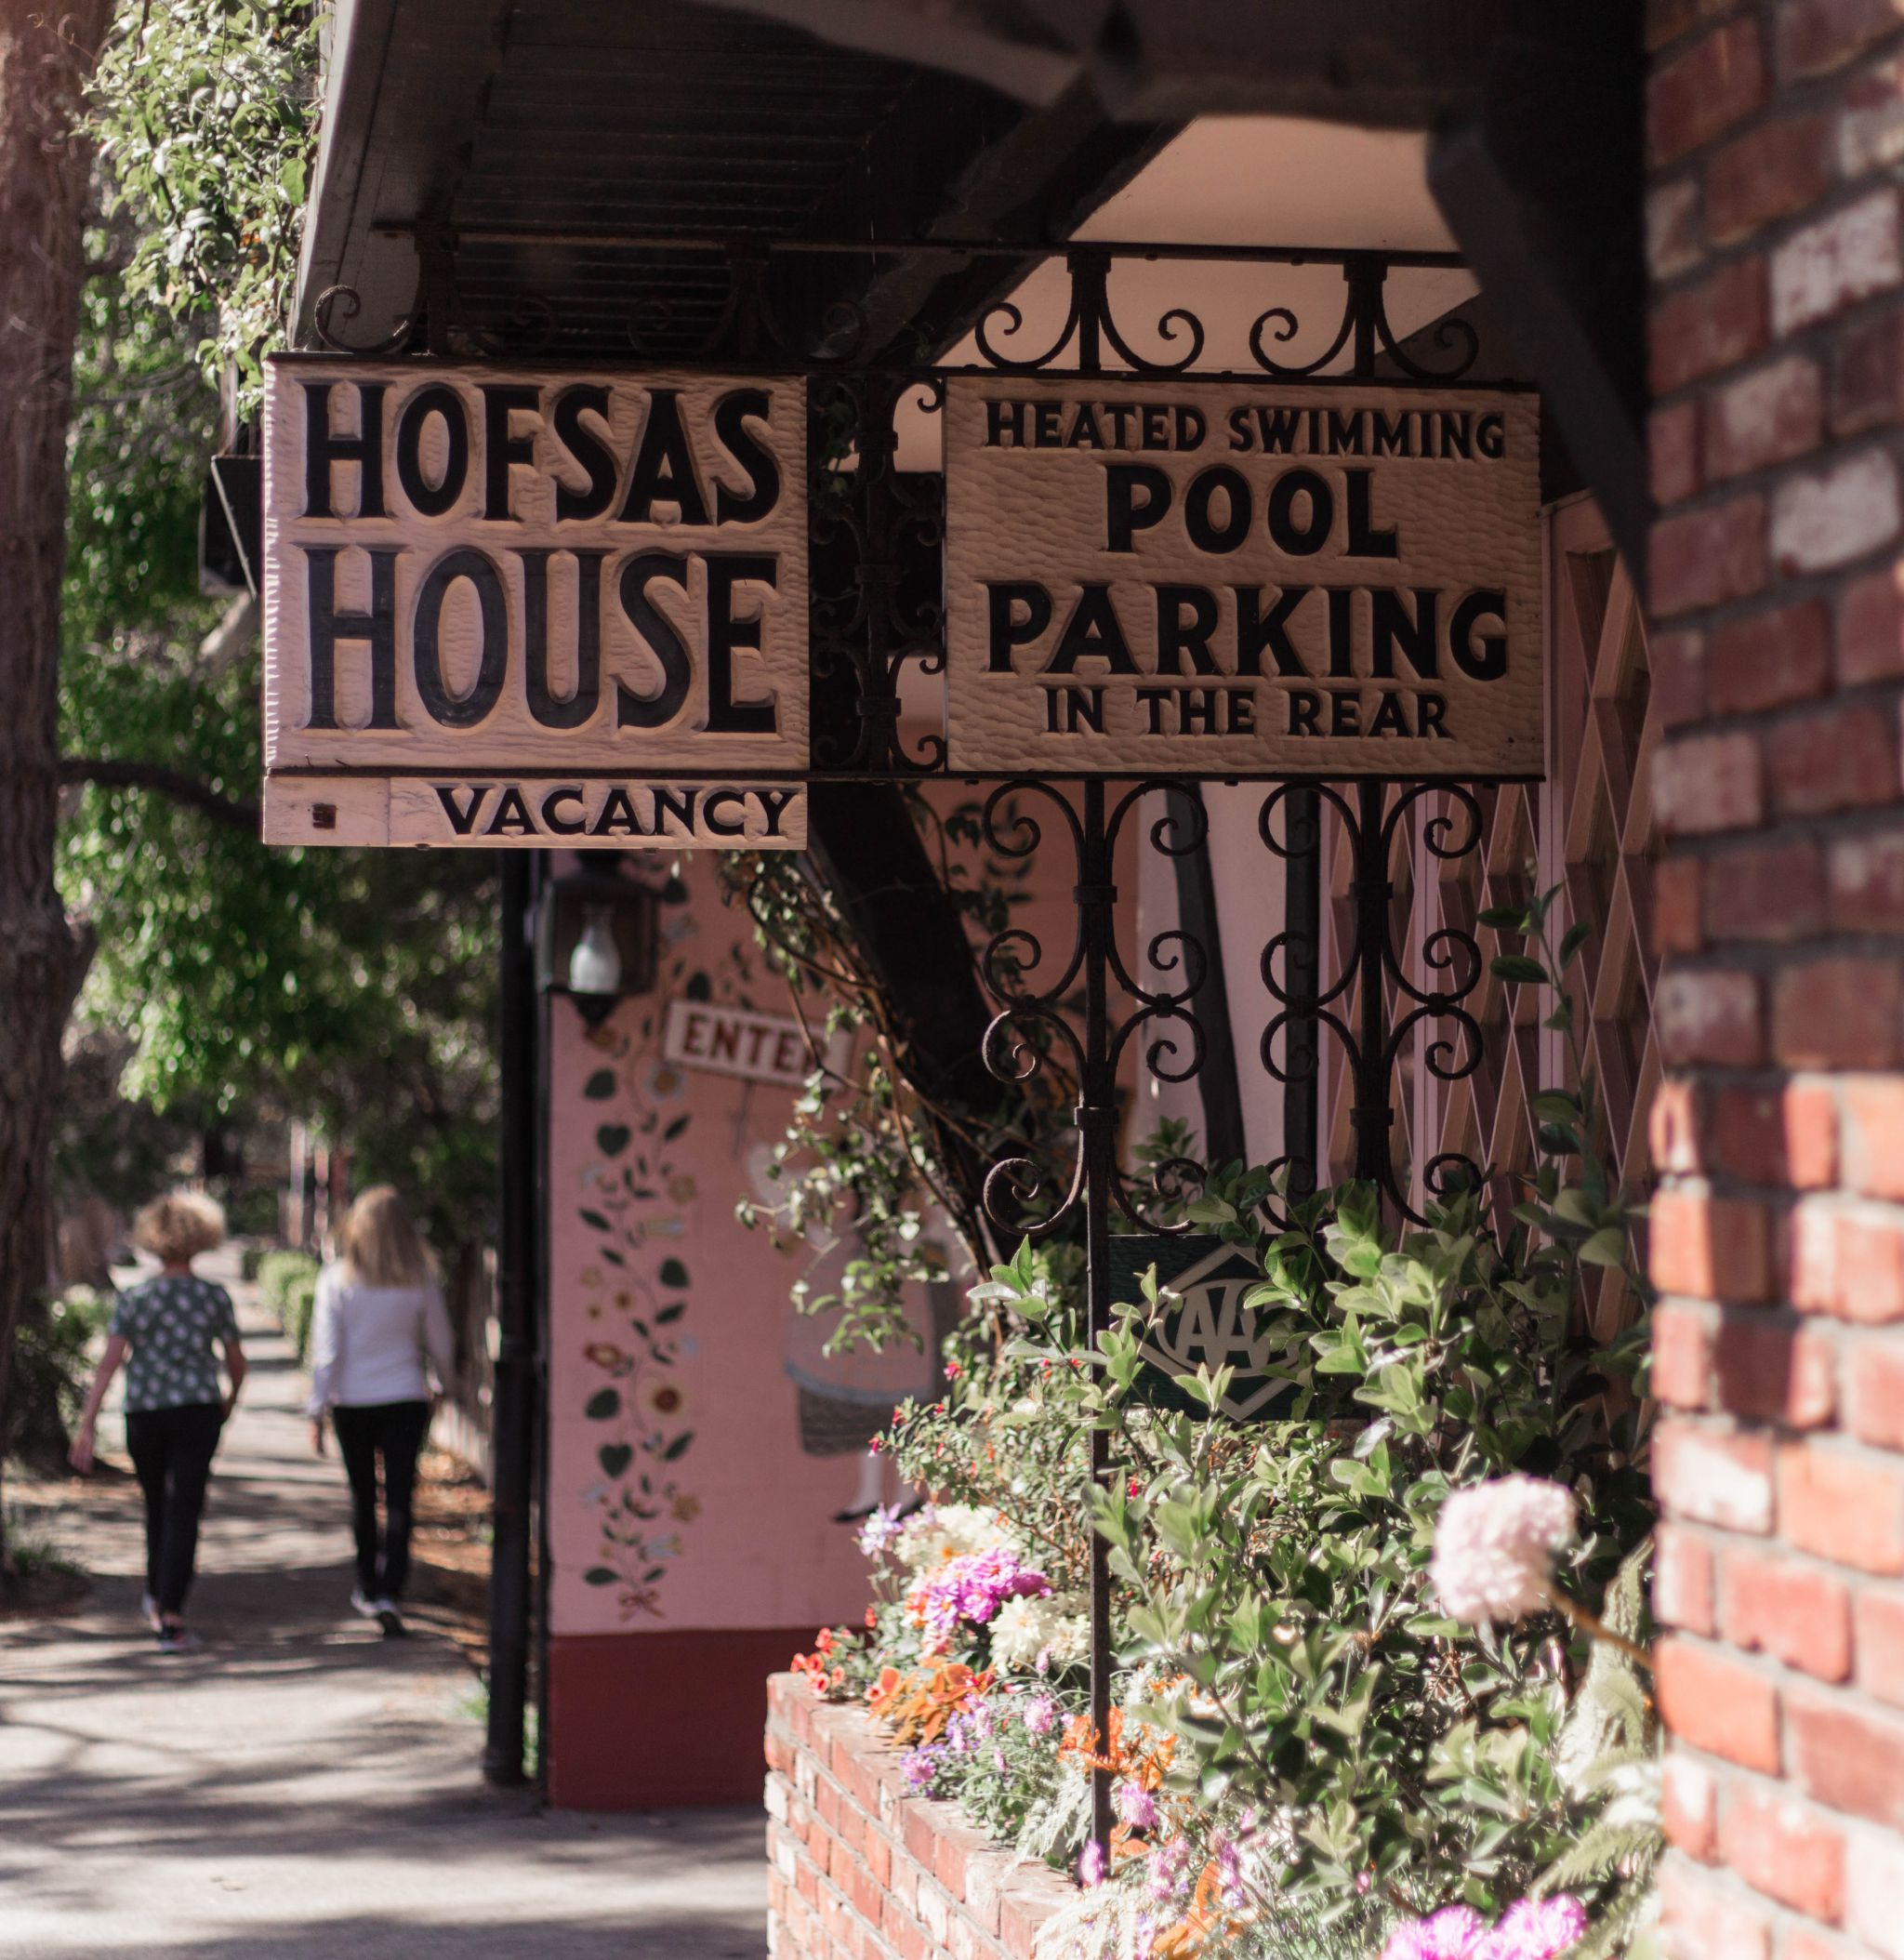 Hofsas House Hotel Review